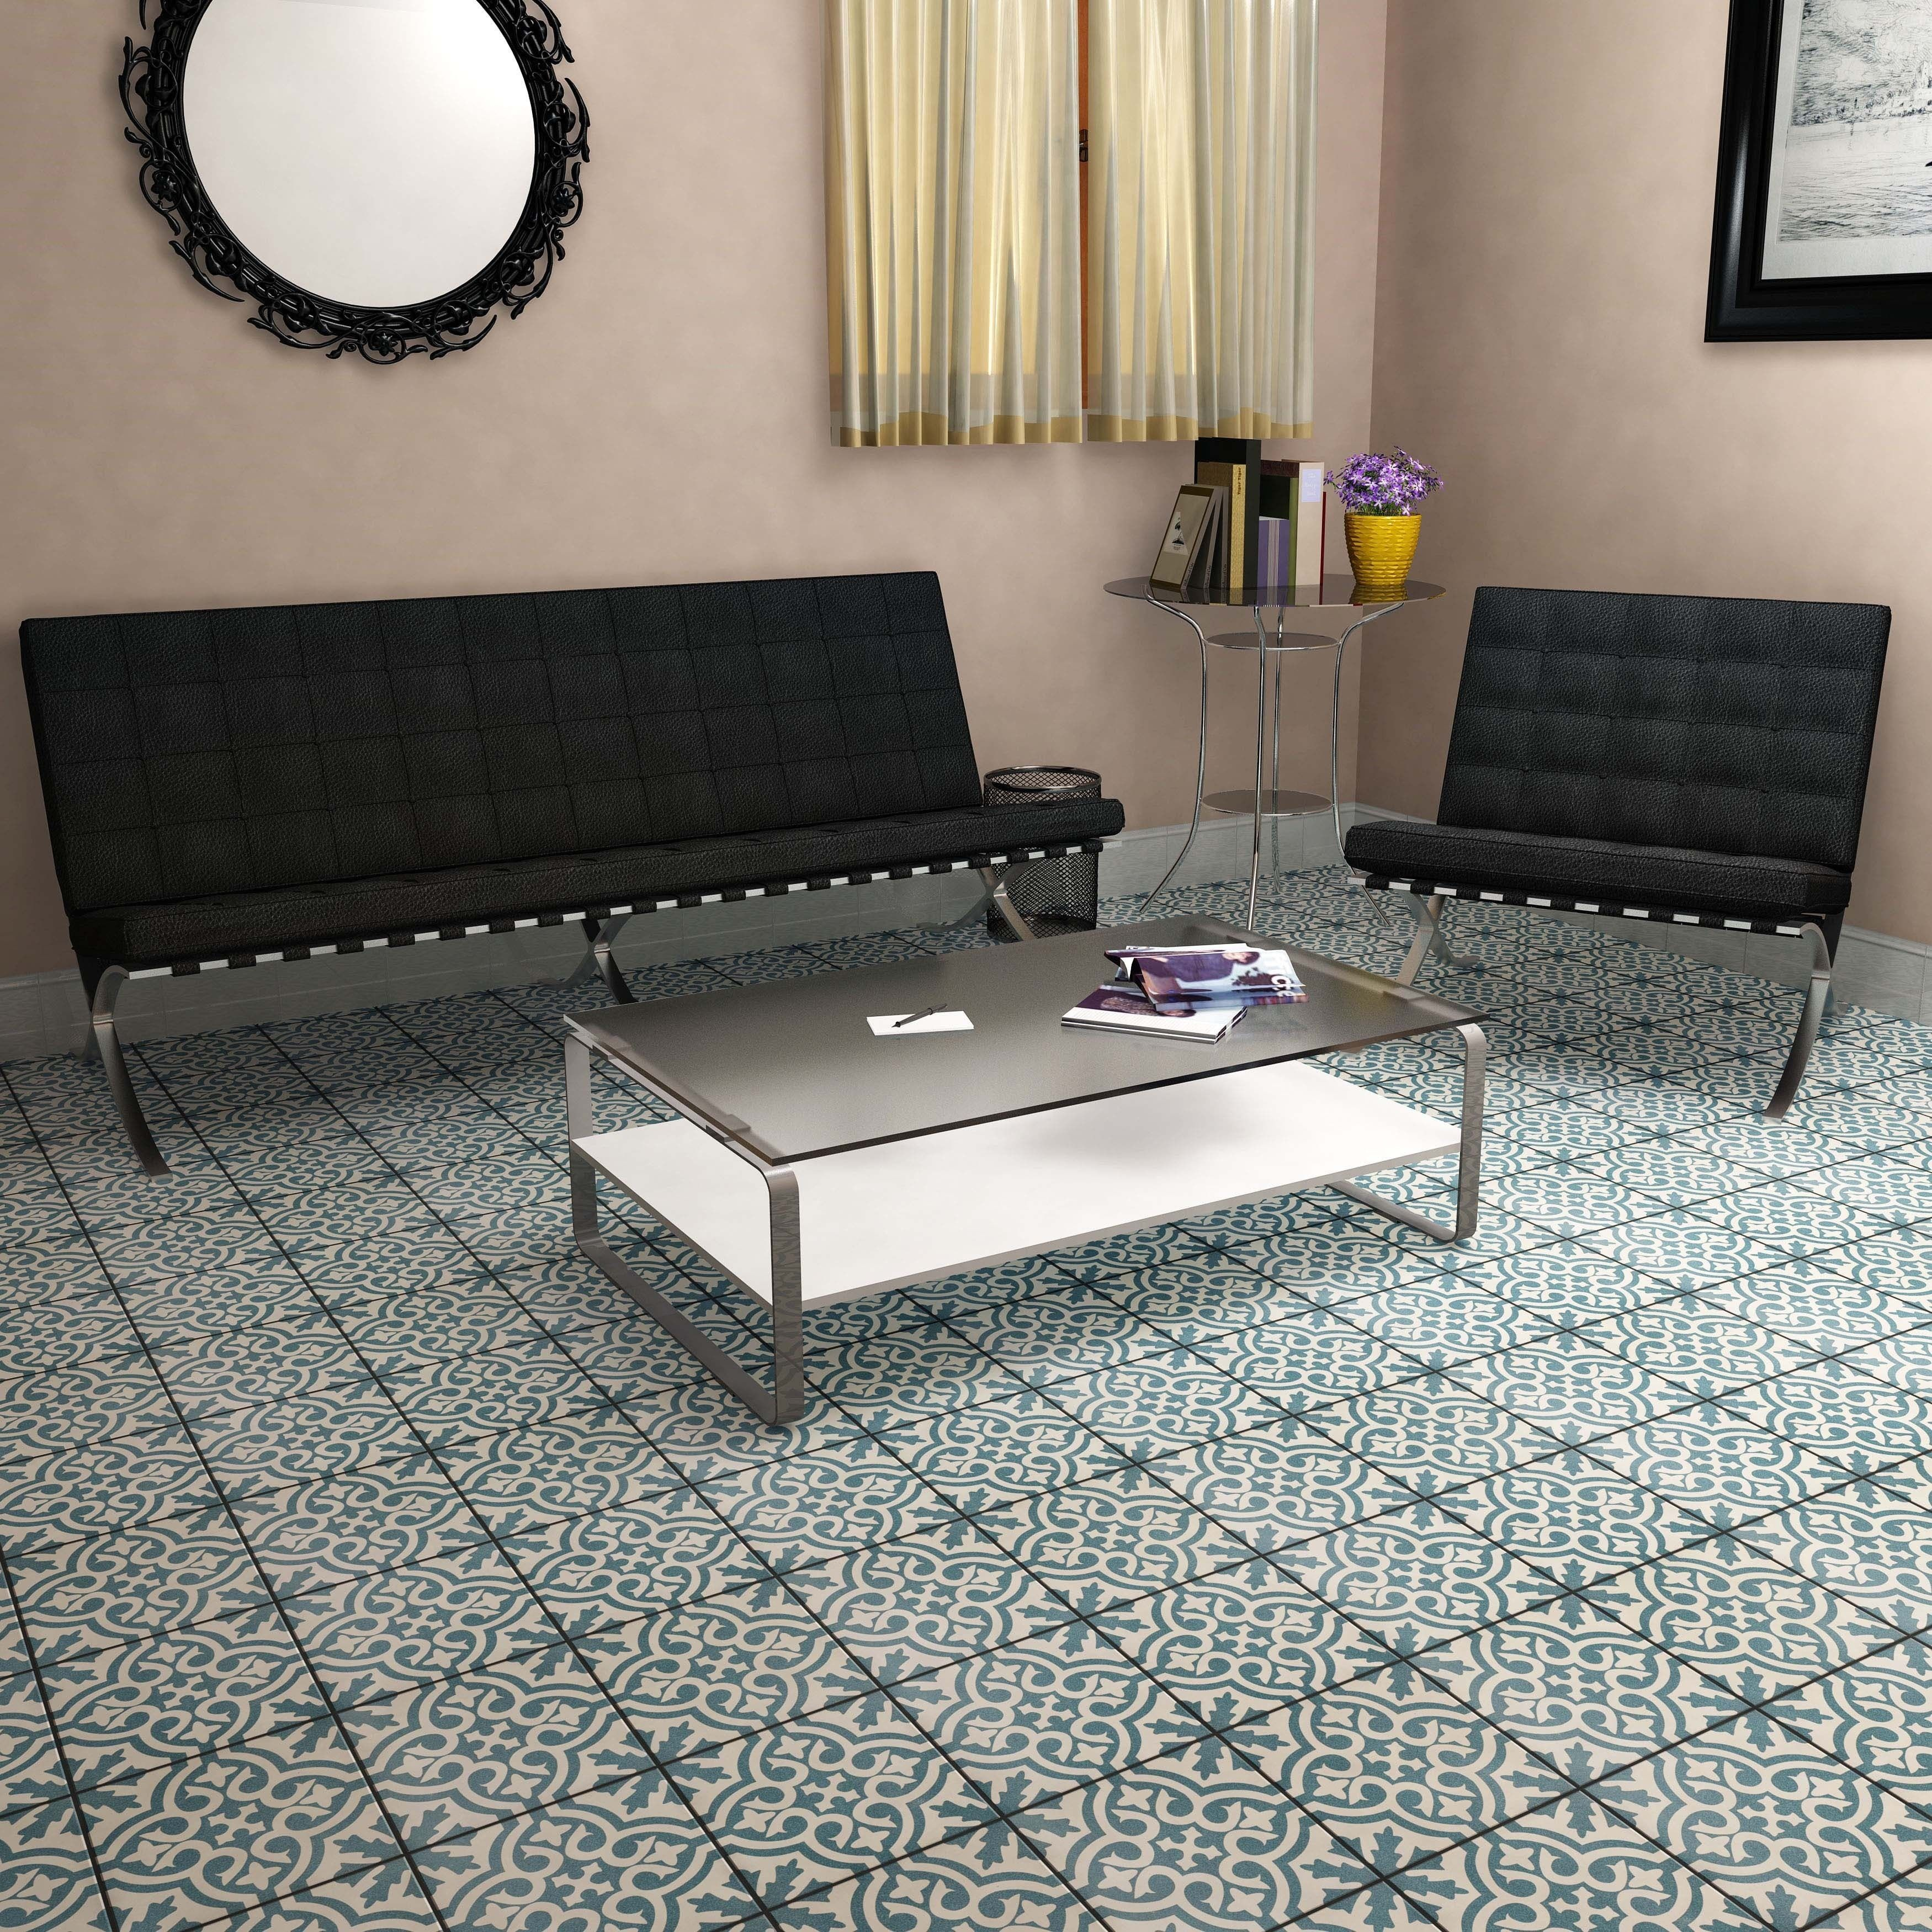 Somertile 17625x17625 inch tudor blue ceramic floor and wall buy cement tile from overstock for everyday discount prices online get everyday free dailygadgetfo Images